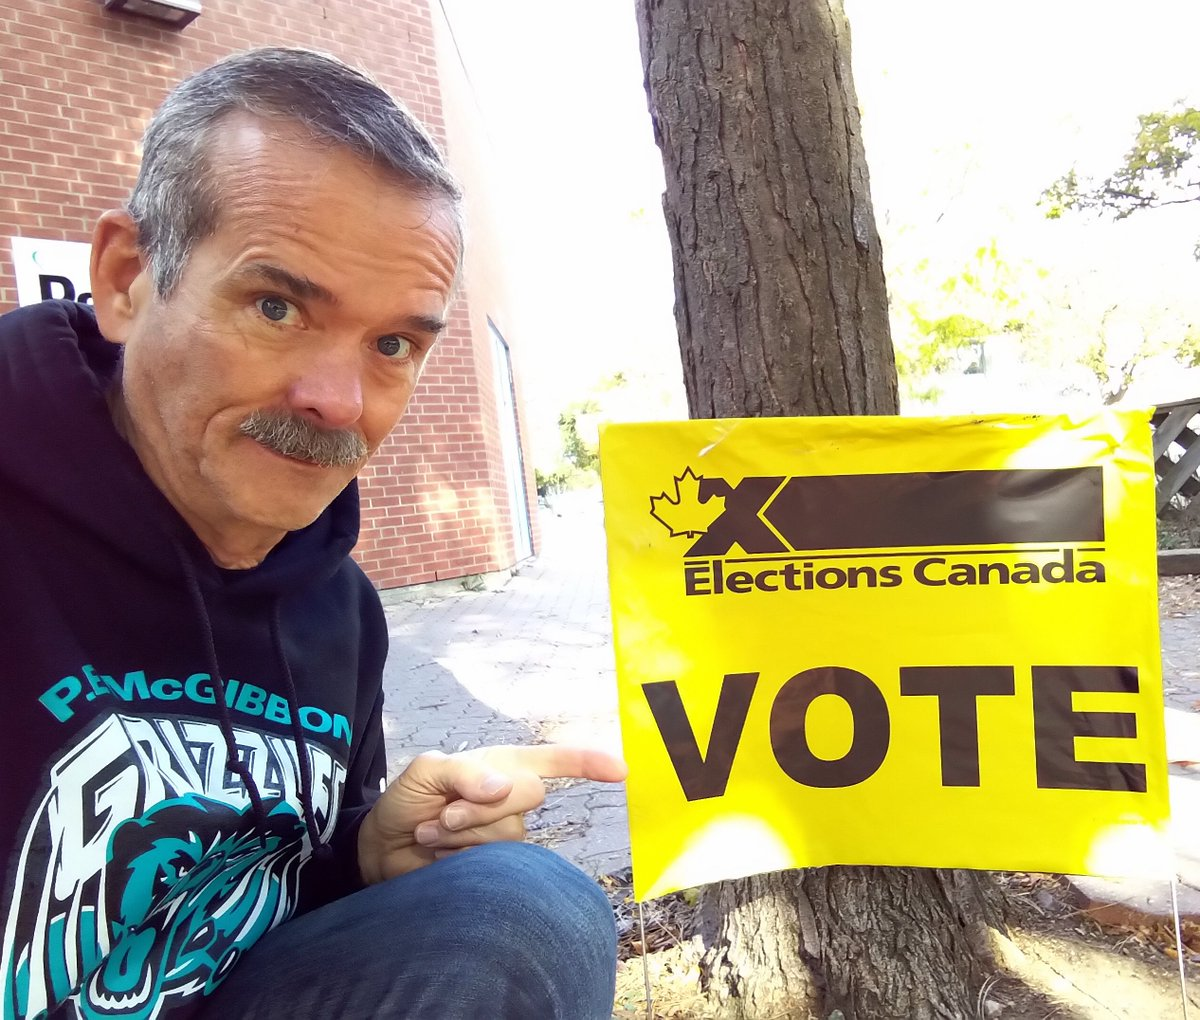 RT @Cmdr_Hadfield: I just voted - be sure and go vote, please! https://t.co/MDNGVbungm